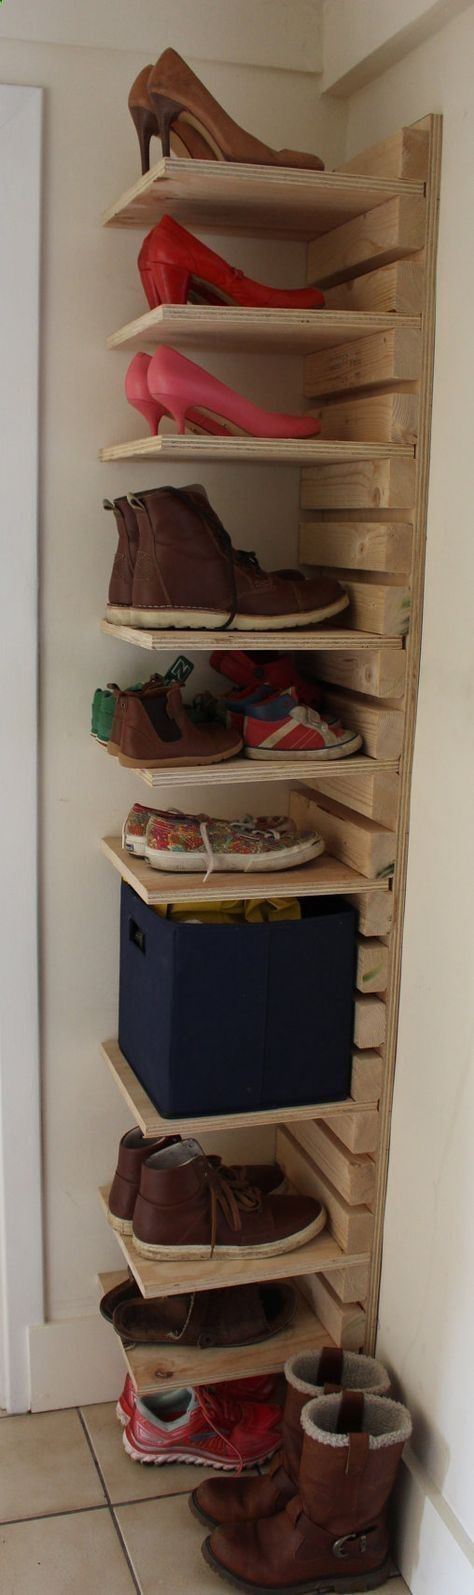 Plans of Woodworking Diy Projects - Woodworking Diy Projects By Ted - Inspiring Best Woodworking Ideas decoratop.co/... Distinct projects will call for different skill levels. You ought to know that outdoors woodworking projects are really common Get A Lifetime Of Project Ideas & Inspiration! #woodworkingprojects Get A Lifetime Of Project Ideas & Inspiration! #woodworkingideas #woodworkingprojectsdiy